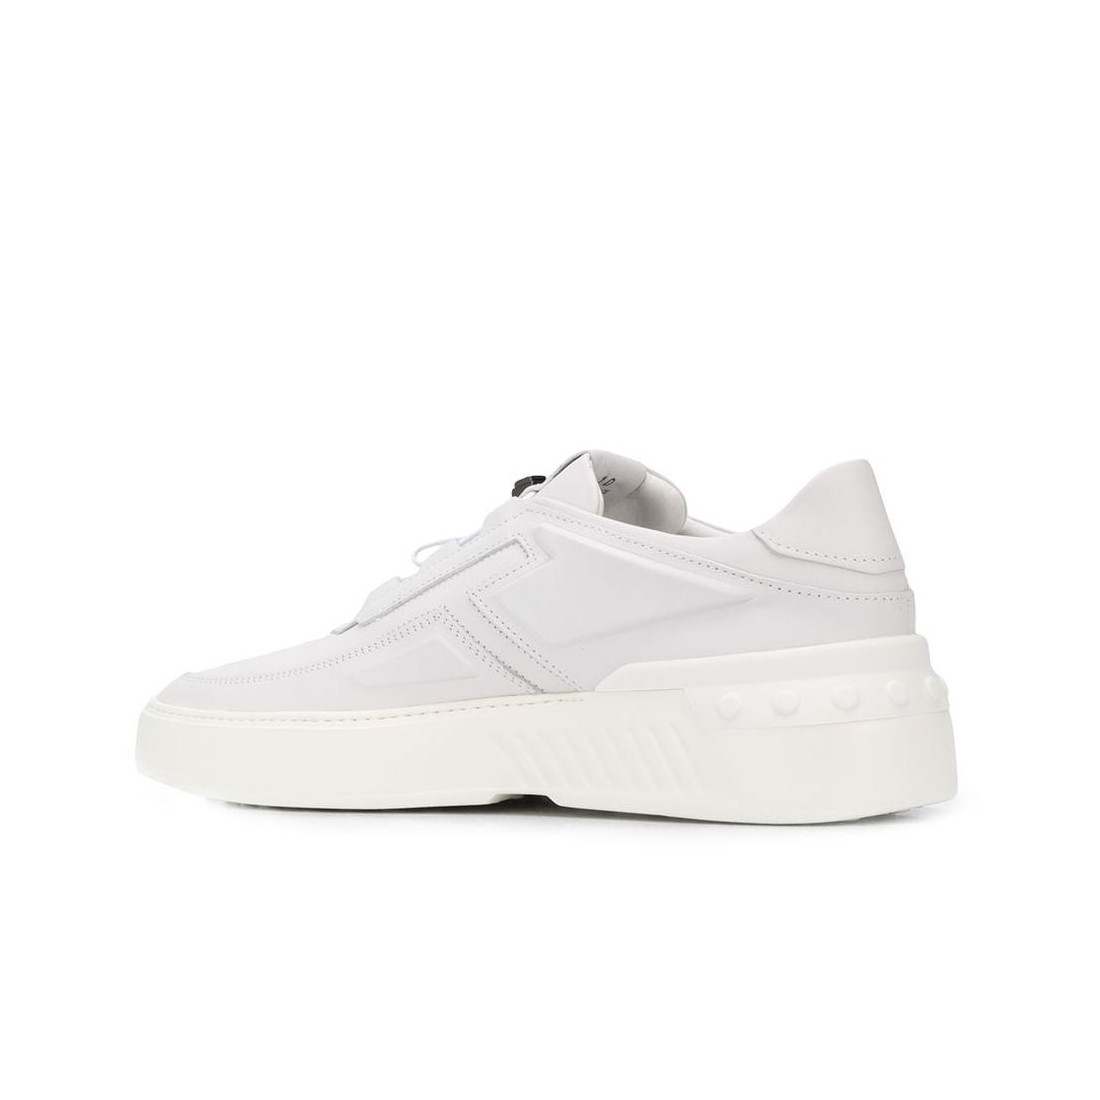 sneakers uomo tods xxm14c0ct10jusb001 6674